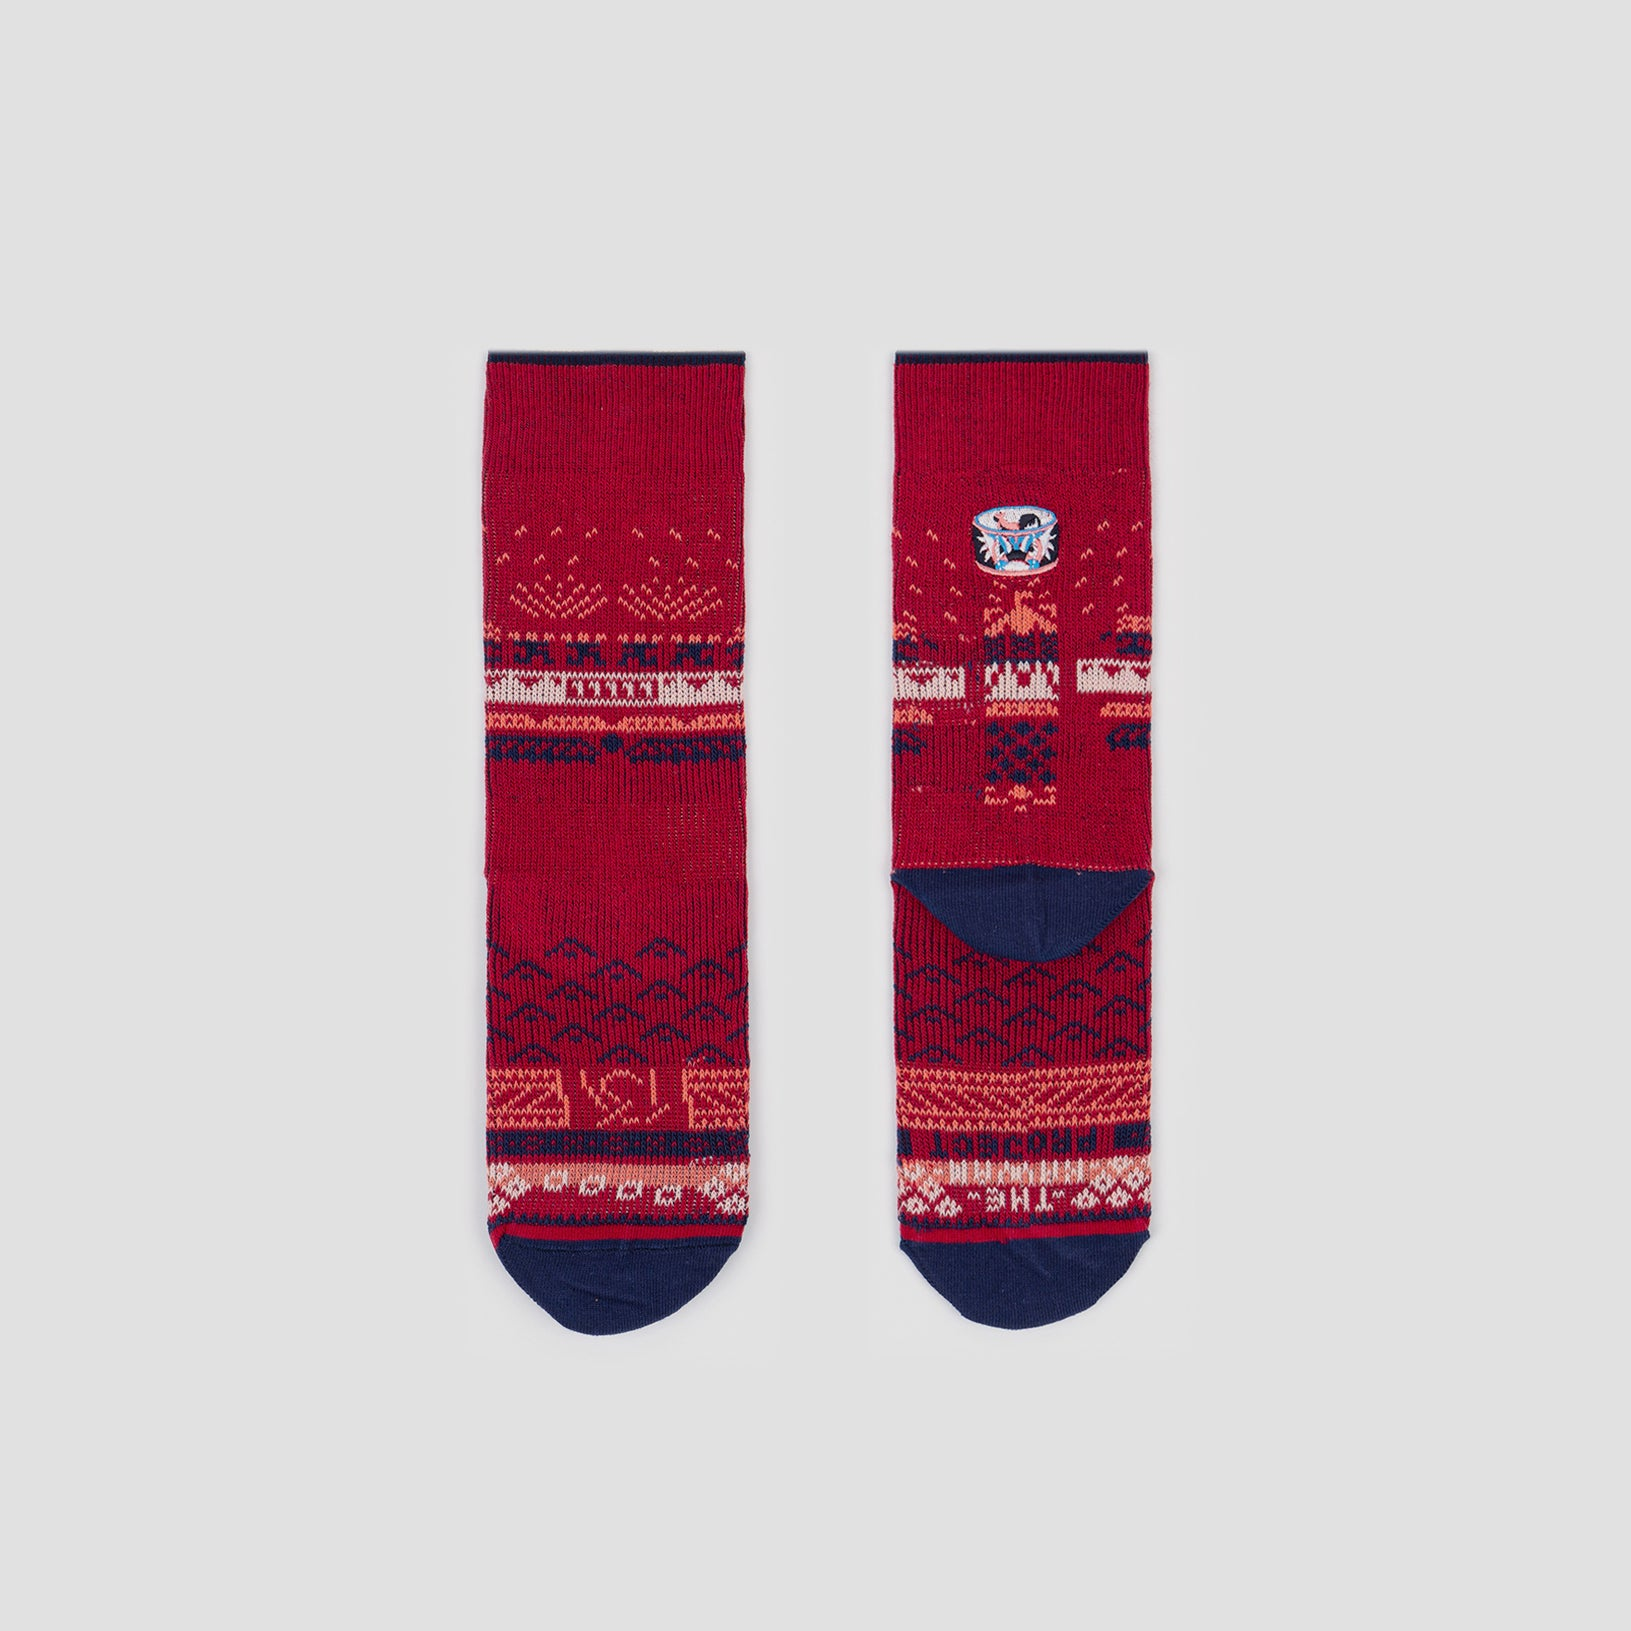 Greater 2gether - Red Socks